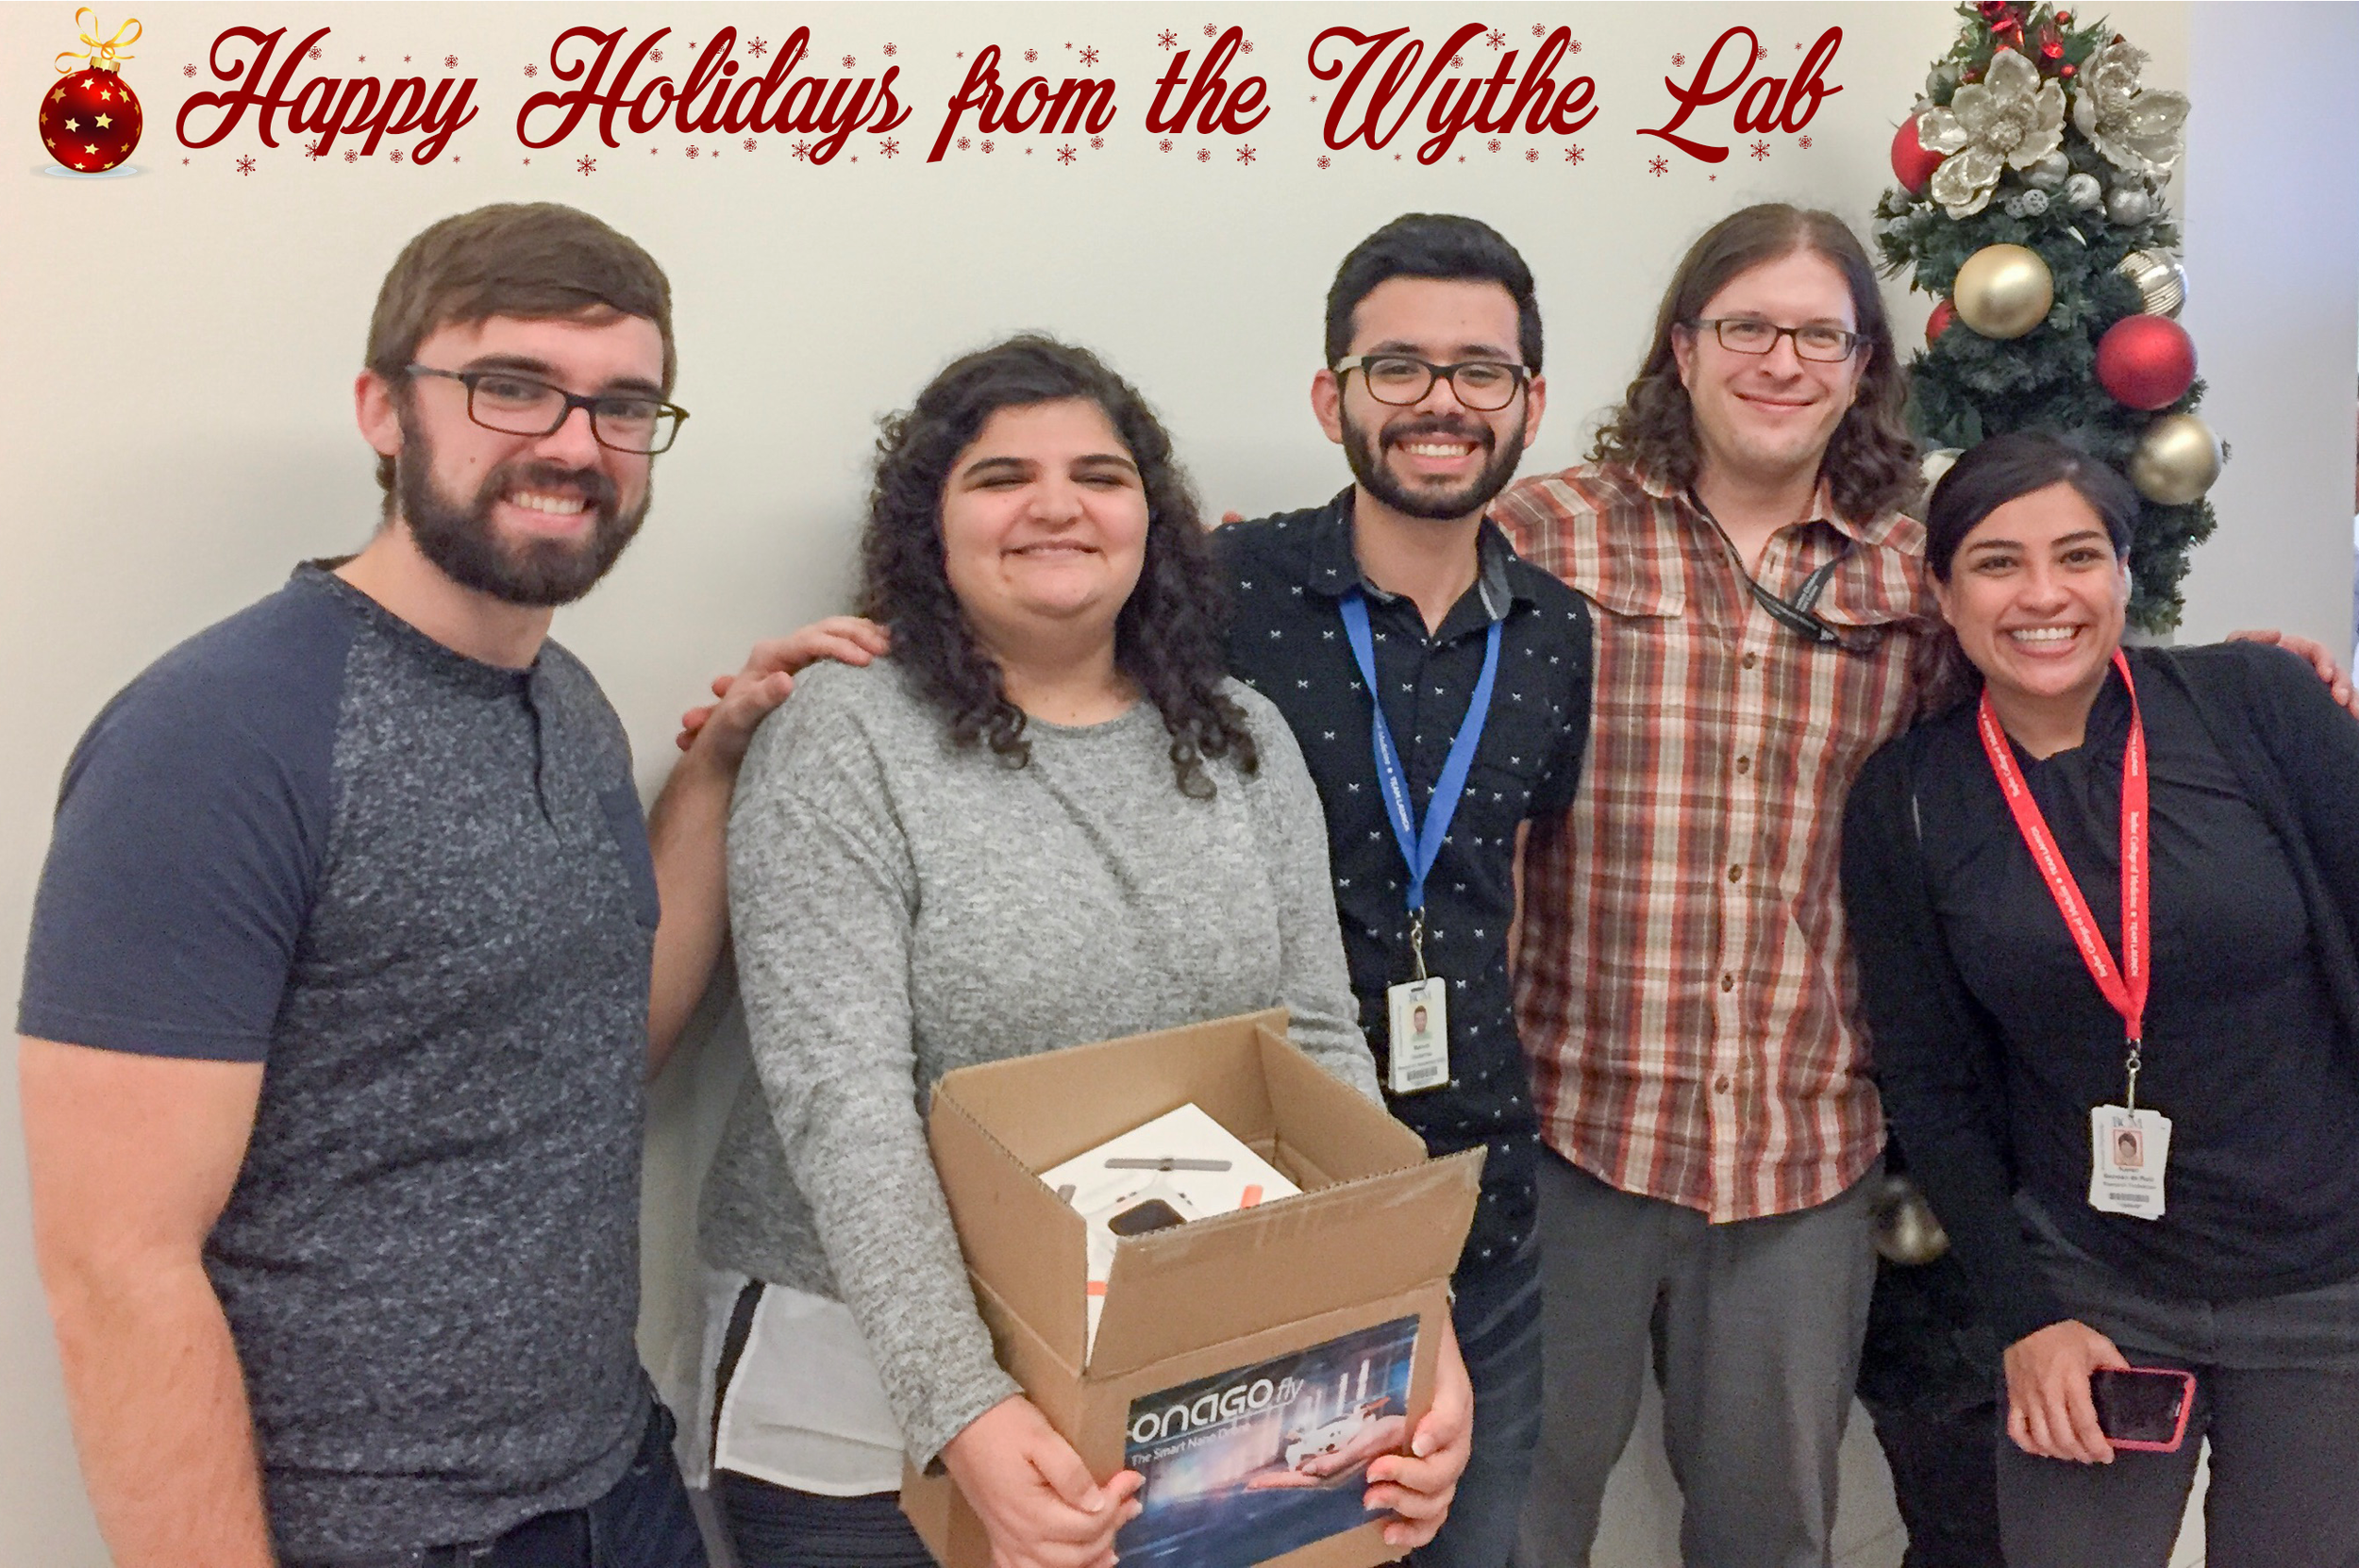 Wythe Lab Christmas.png